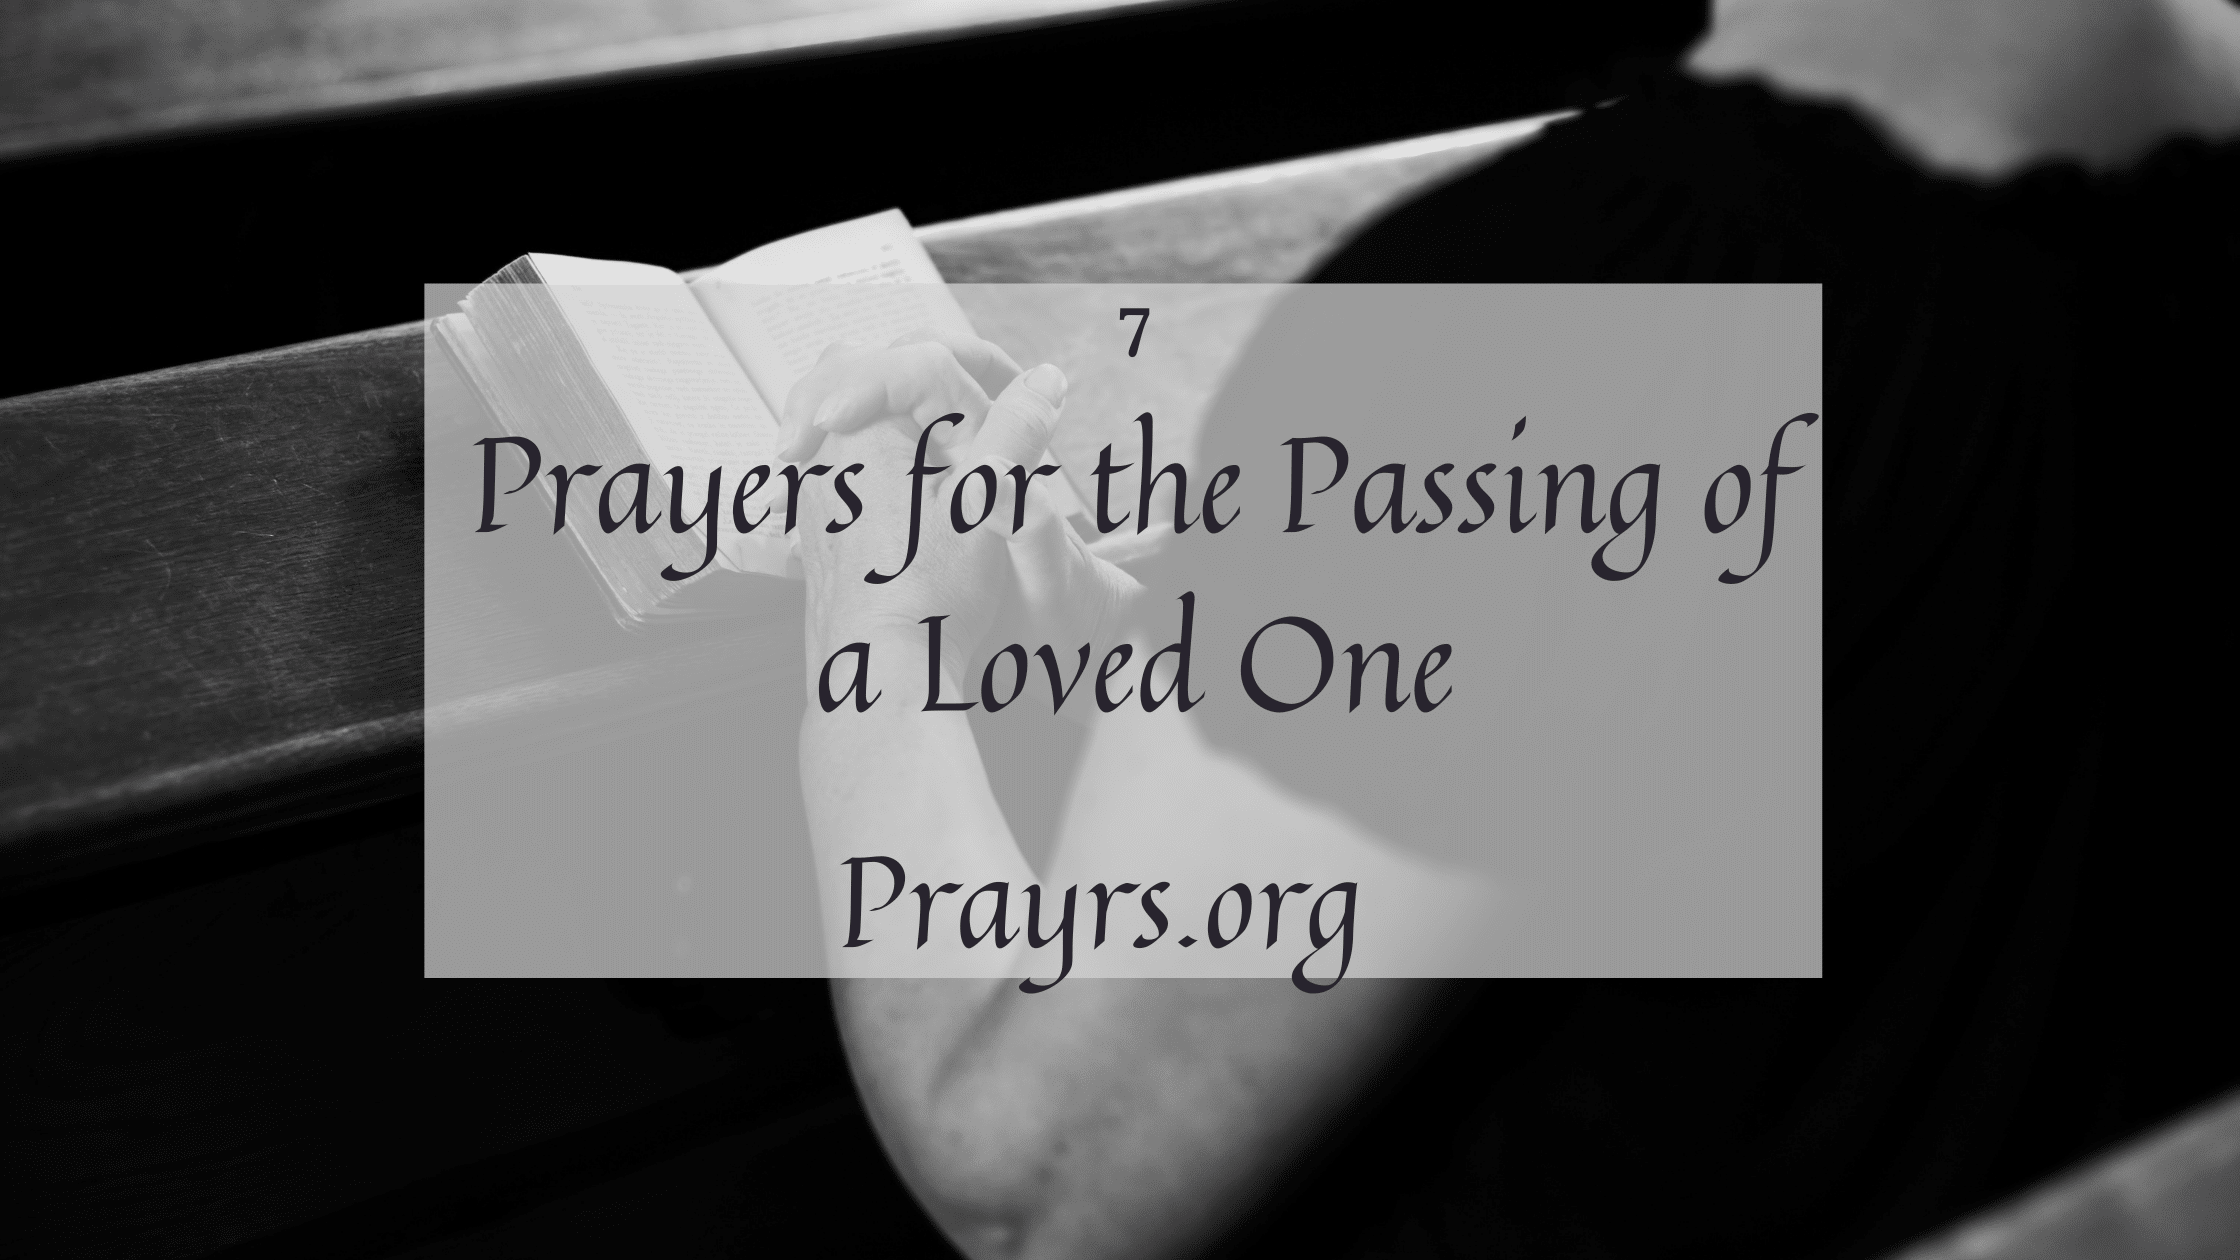 Deep Prayers for the Passing of a Loved One